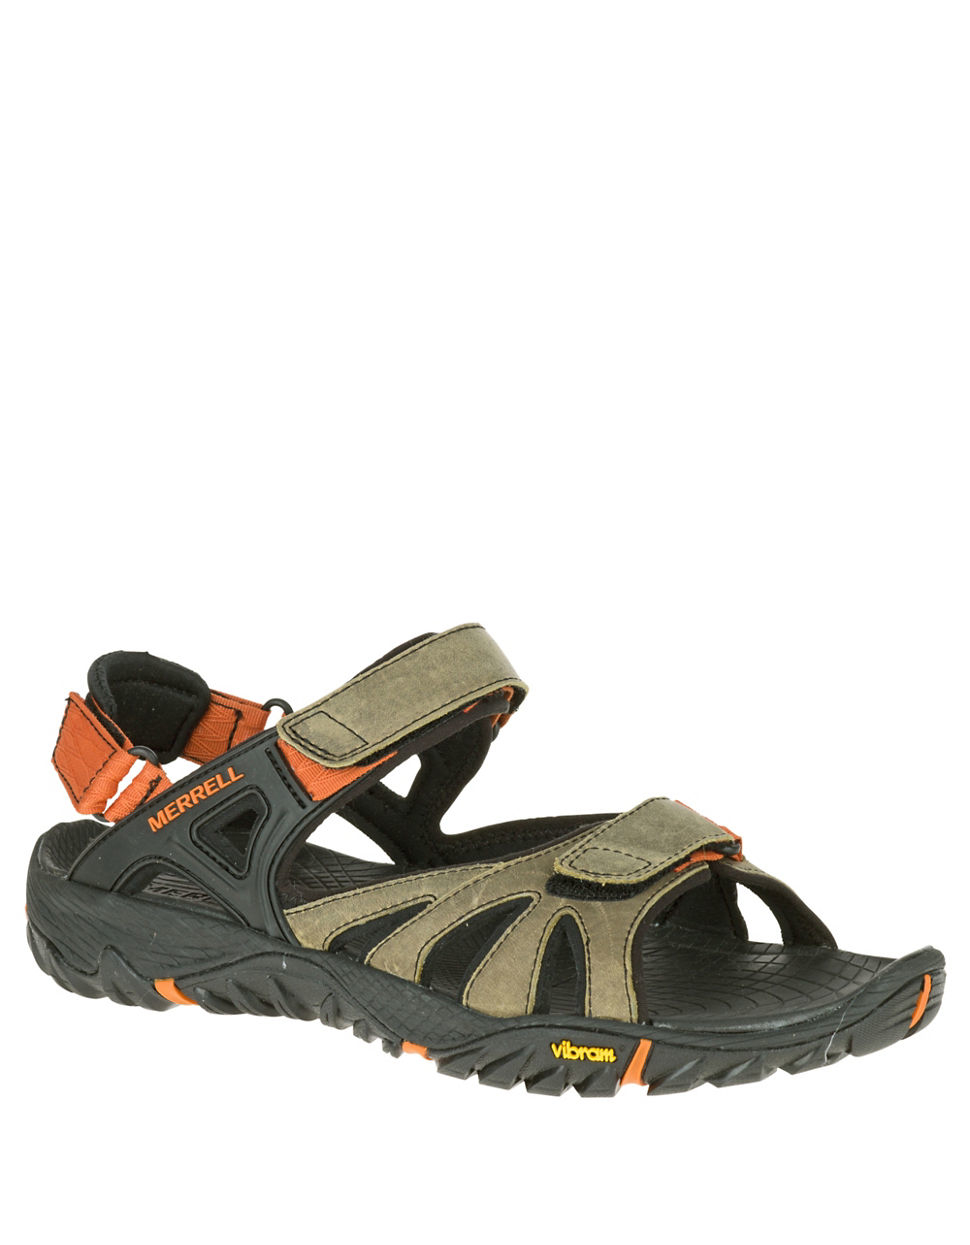 93c5ba5f7525 Lyst - Merrell All Out Blaze Sieve Convertible Leather Sandals in ...